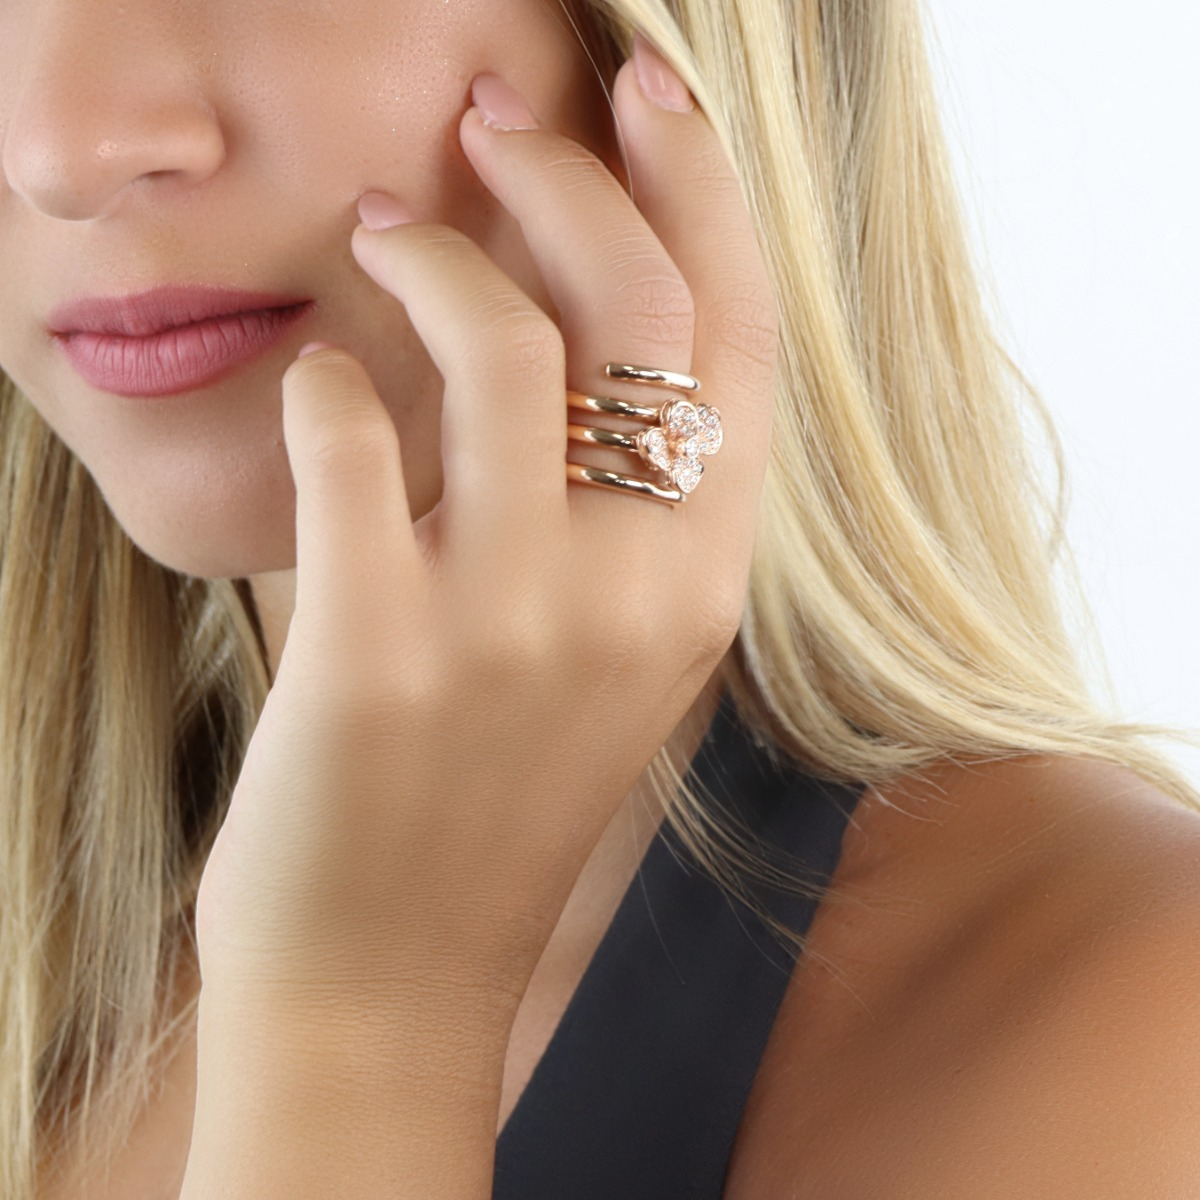 Red Gold Spiral Ring with Diamond-Enriched Flower